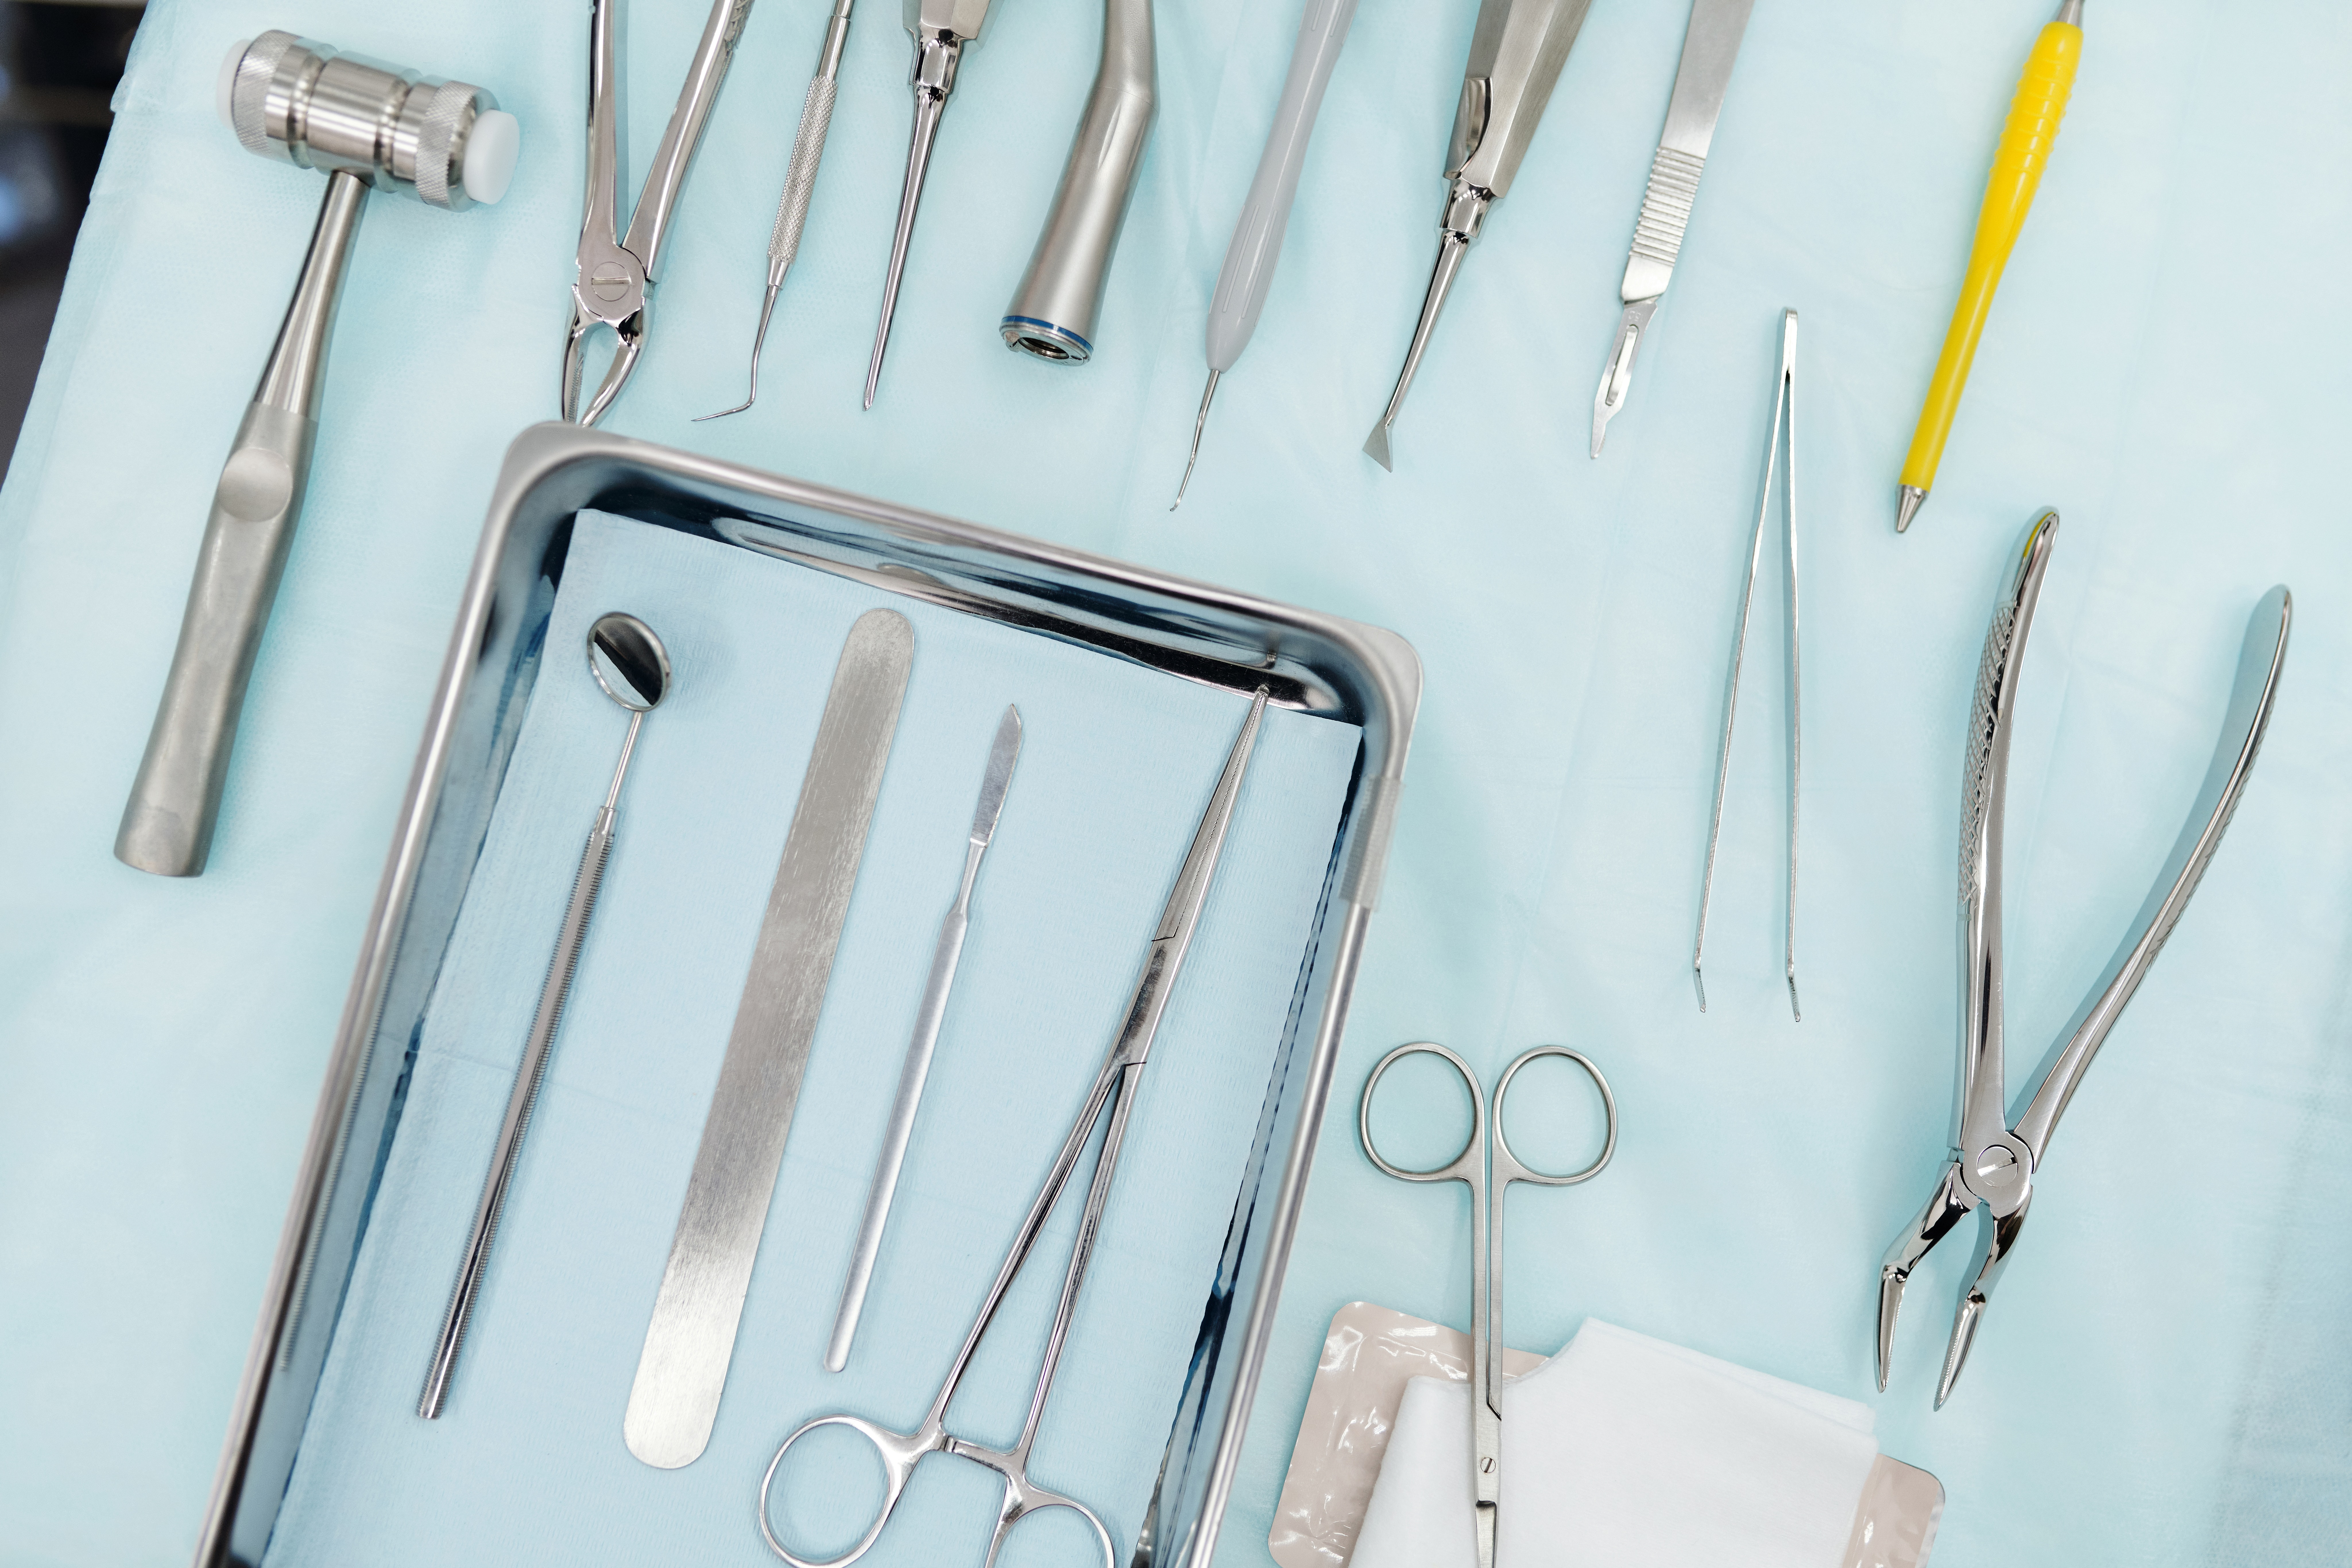 What is the best way to track unpaid dental claims?